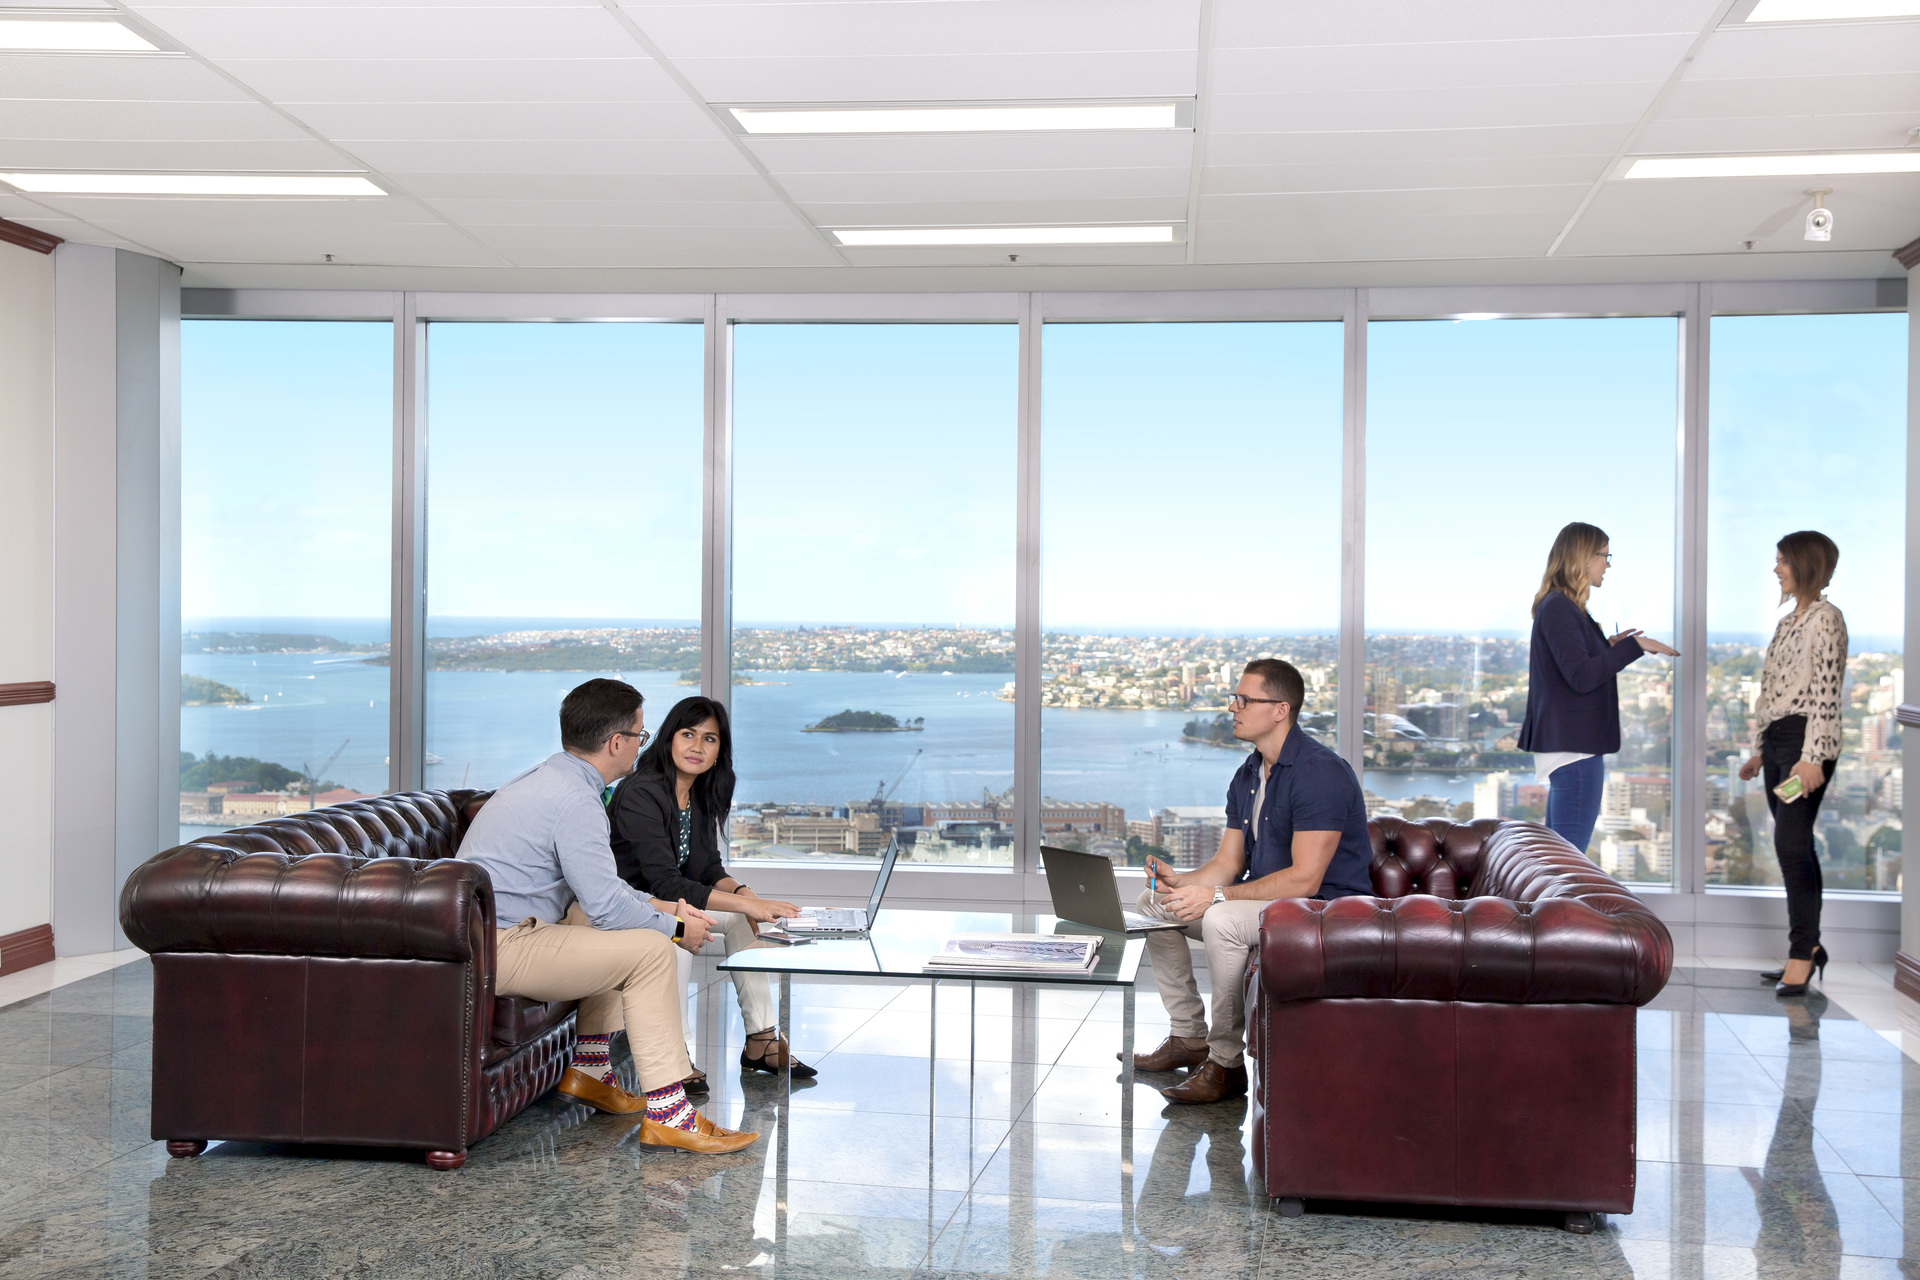 PRIME LOCATION OFFICES IN SYDNEY WITH EXCELLENT NATURAL VIEWS